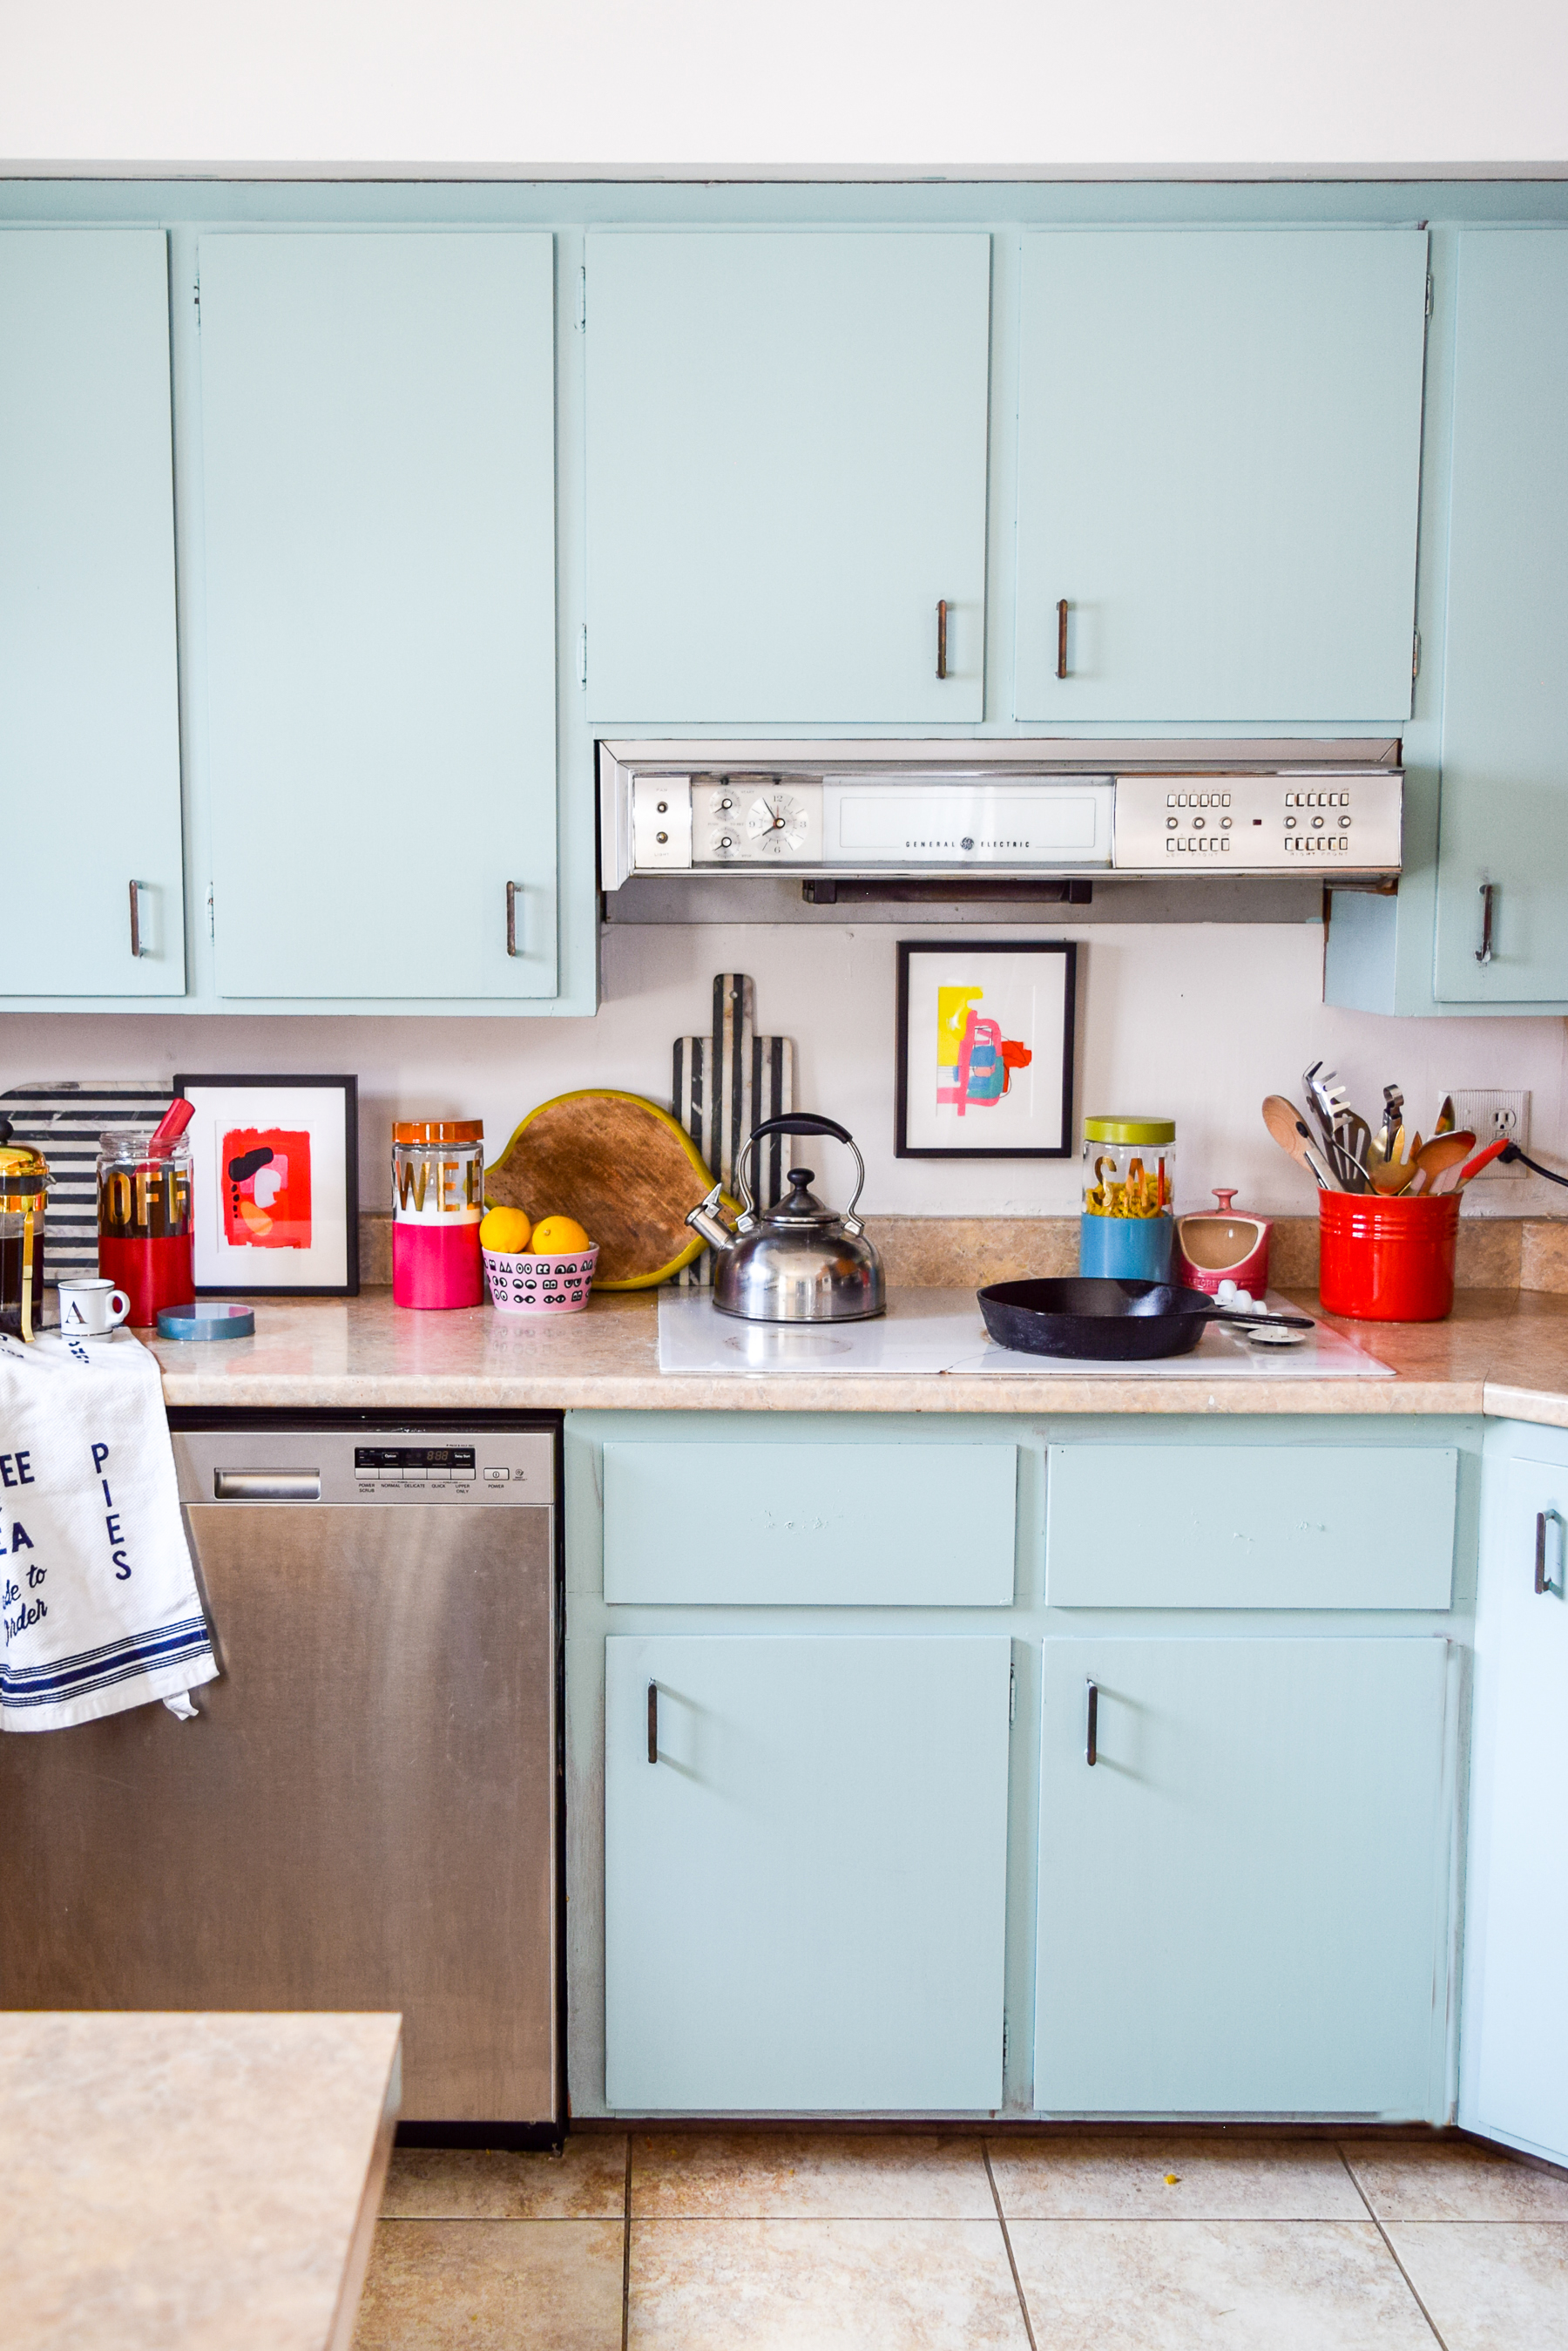 DIY colour blocked kitchen canisters are the Kate Spade Inspired kitchen must-have! And the best part? You can DIY them easily!